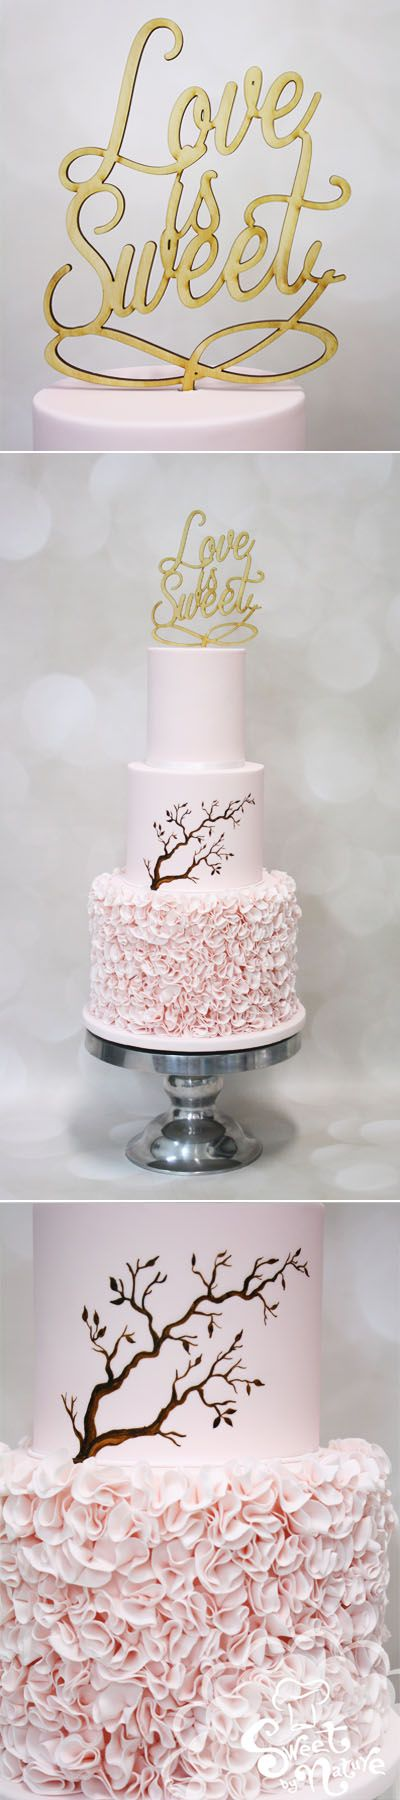 234 Best Sweet By Nature Cakes Images On Pinterest